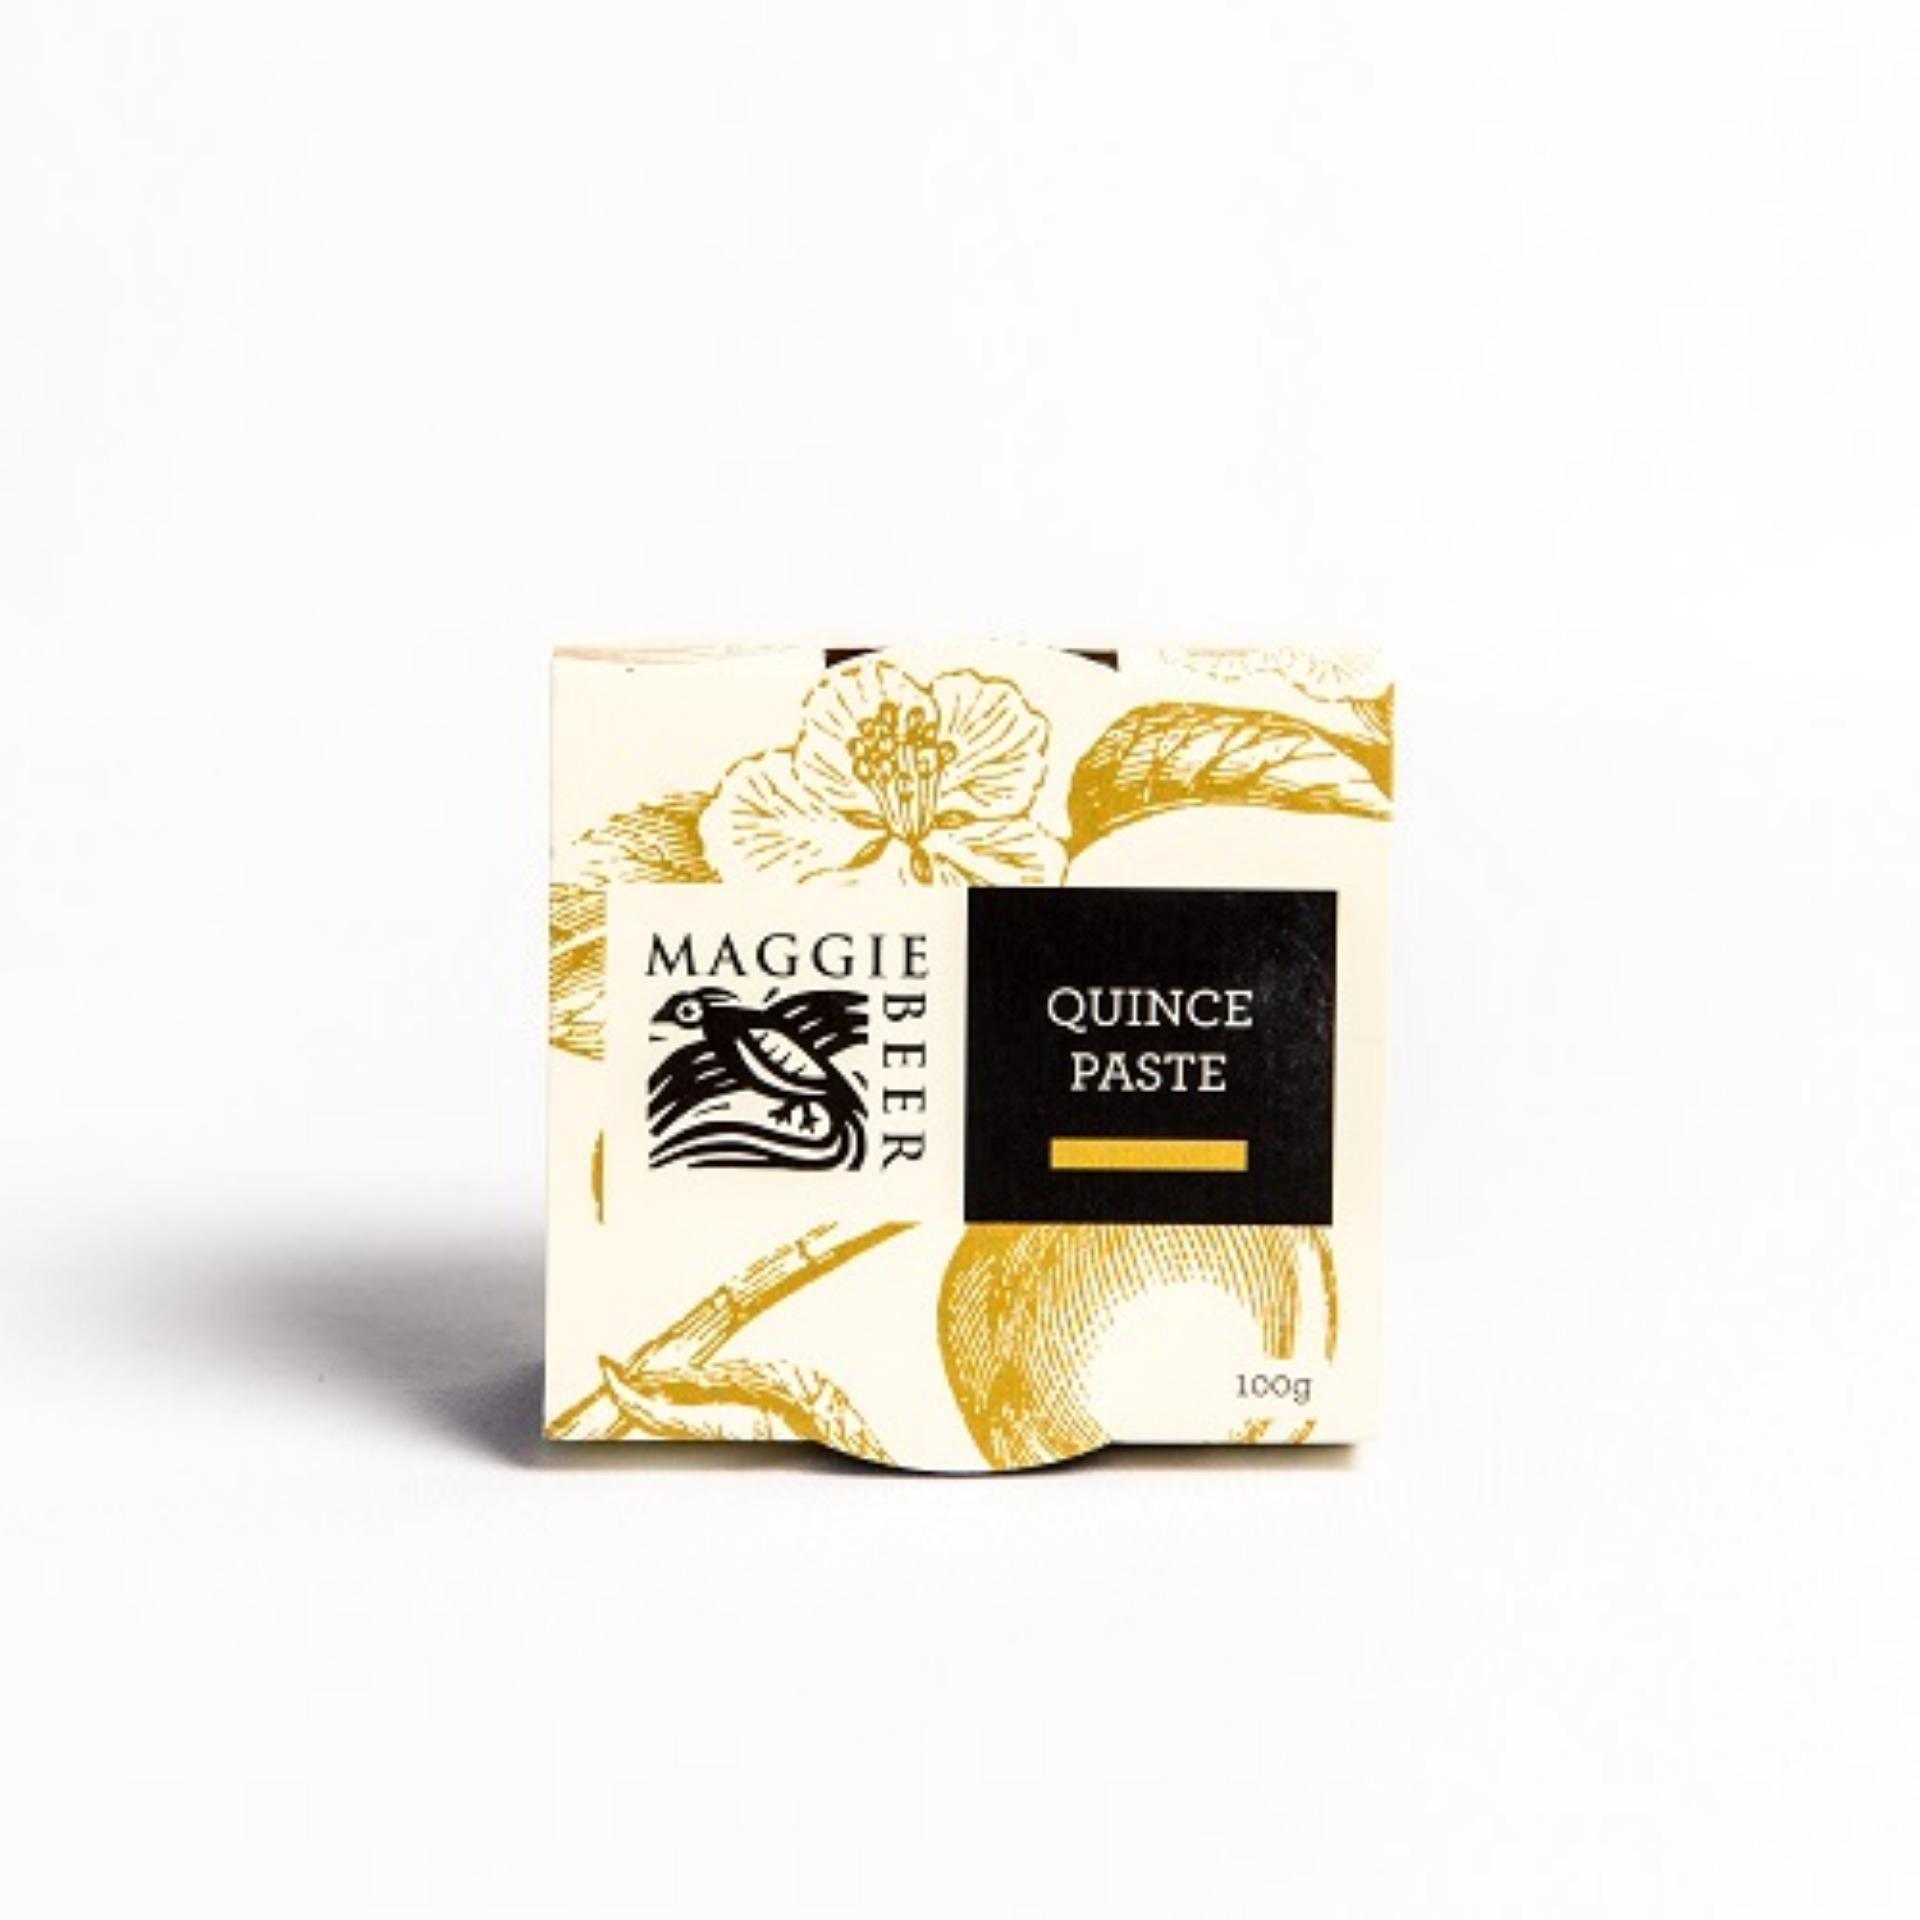 Maggie Bear Maggie Quice Fruit Paste 100g By Jones The Grocer.